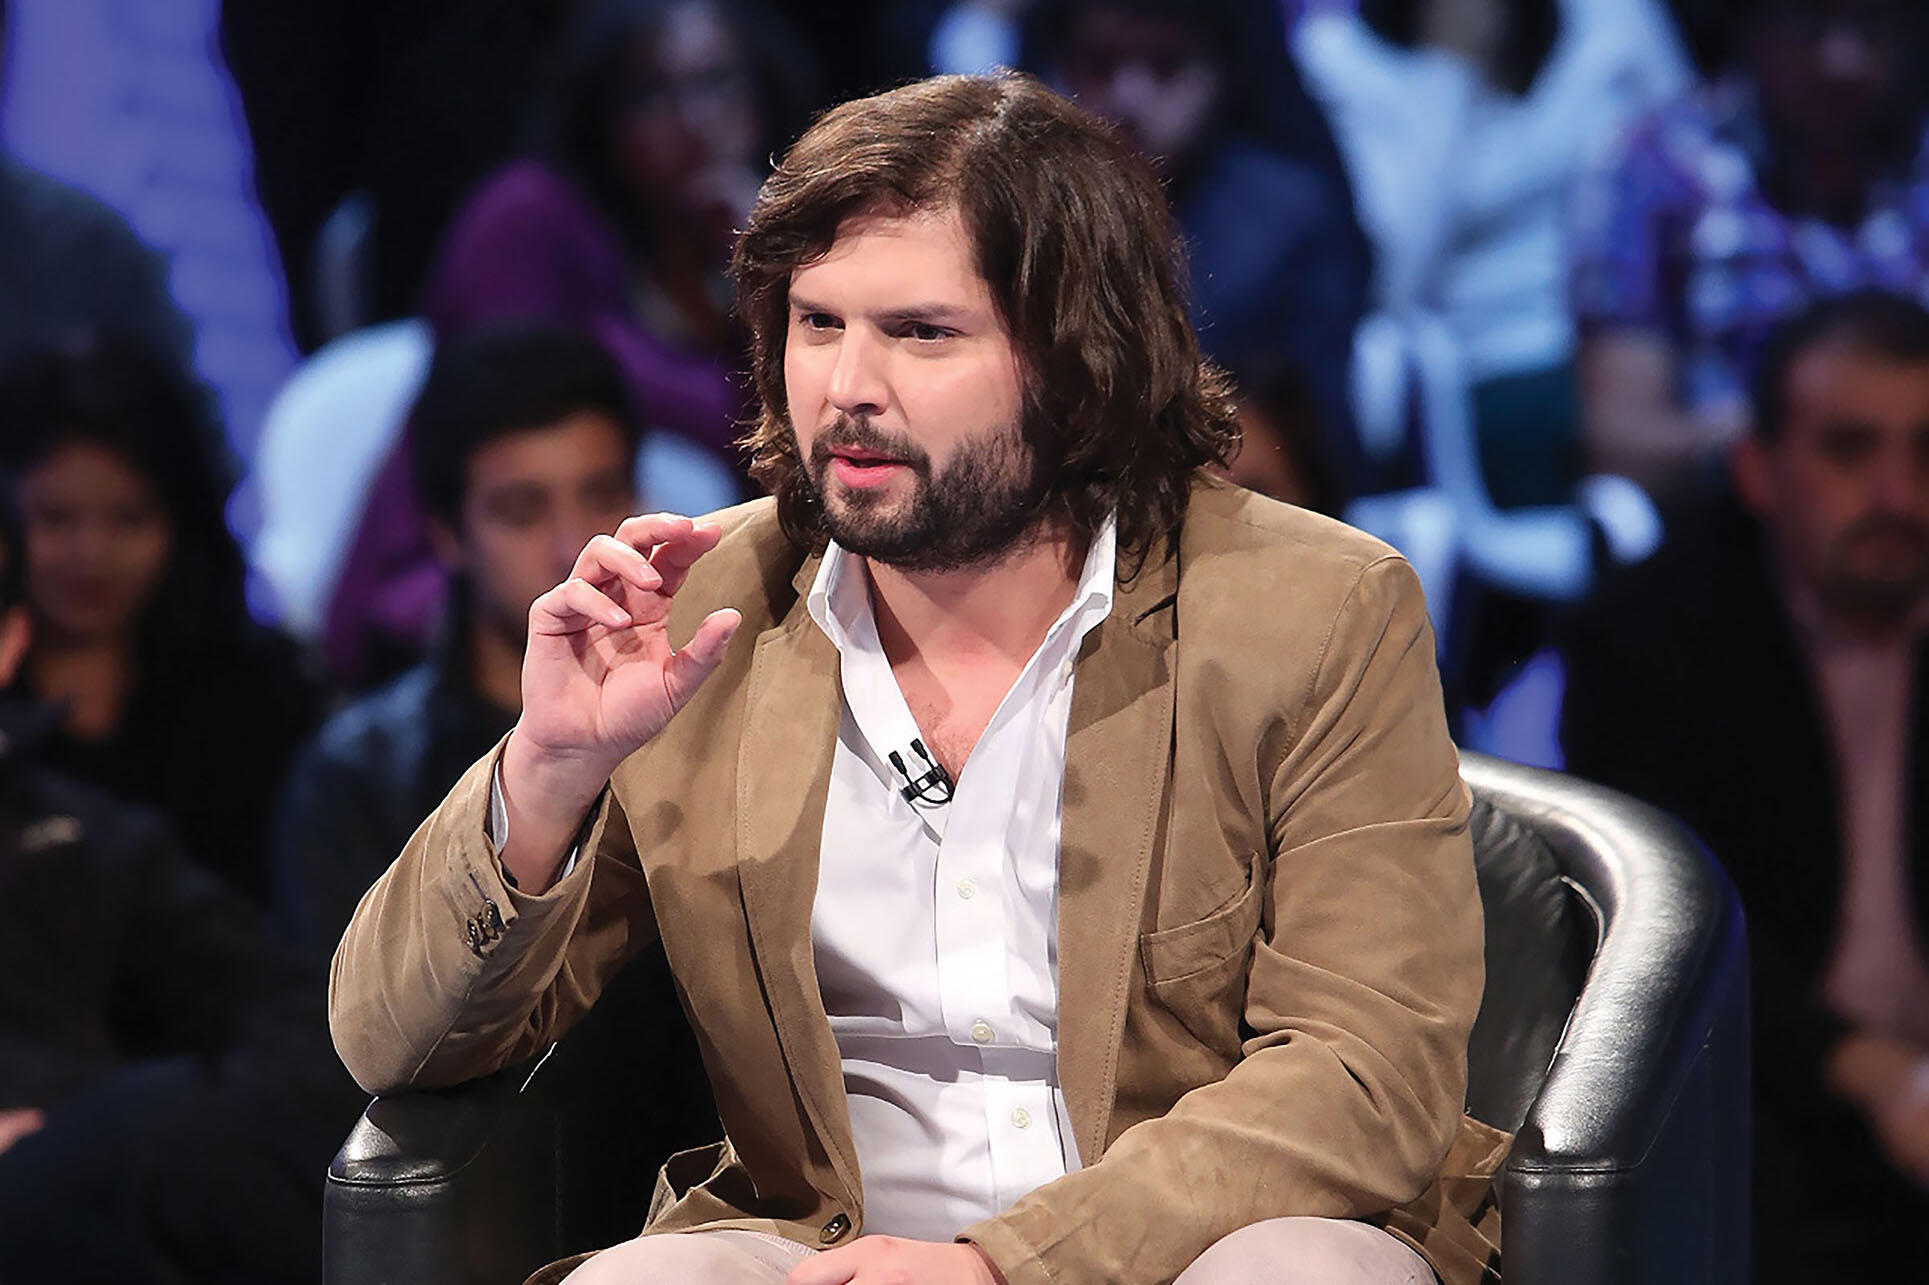 Gabriel Boric being interviewed as a candidate for Chile's Congress, April 2013. (Photo courtesy of Fotos TVN.)